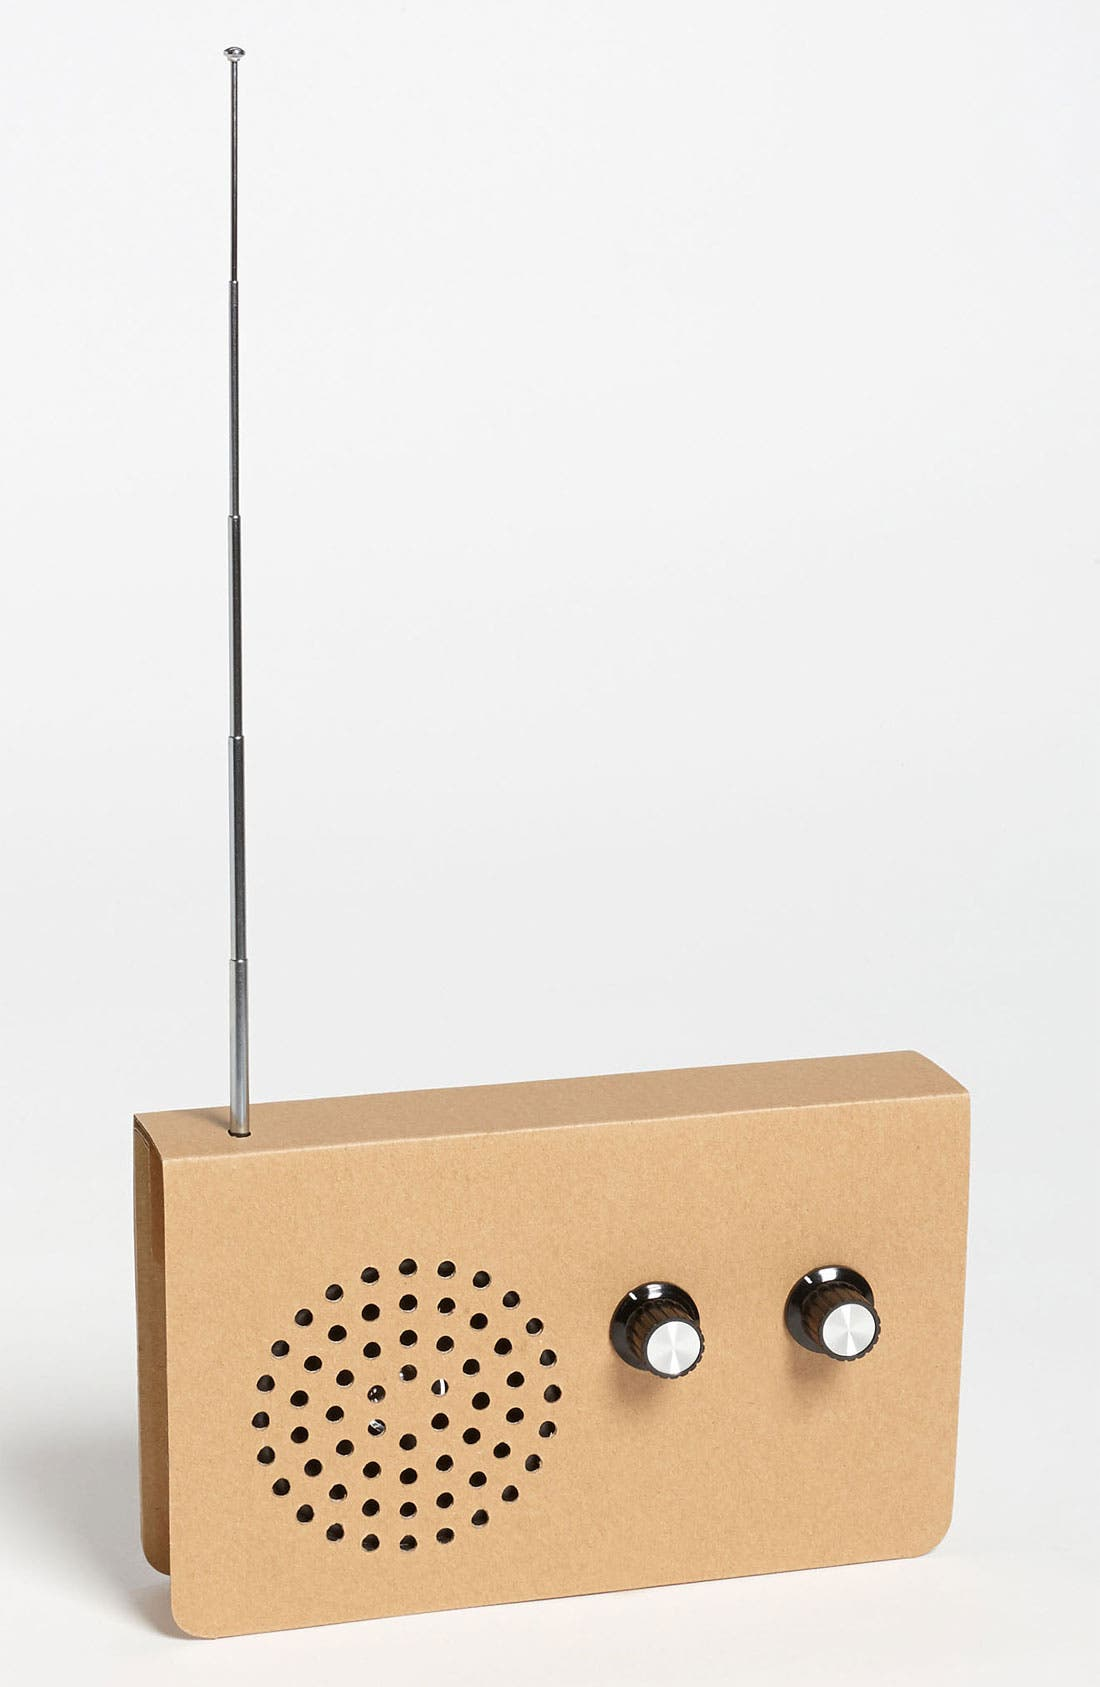 Alternate Image 1 Selected - Cardboard MP3 Player FM Radio